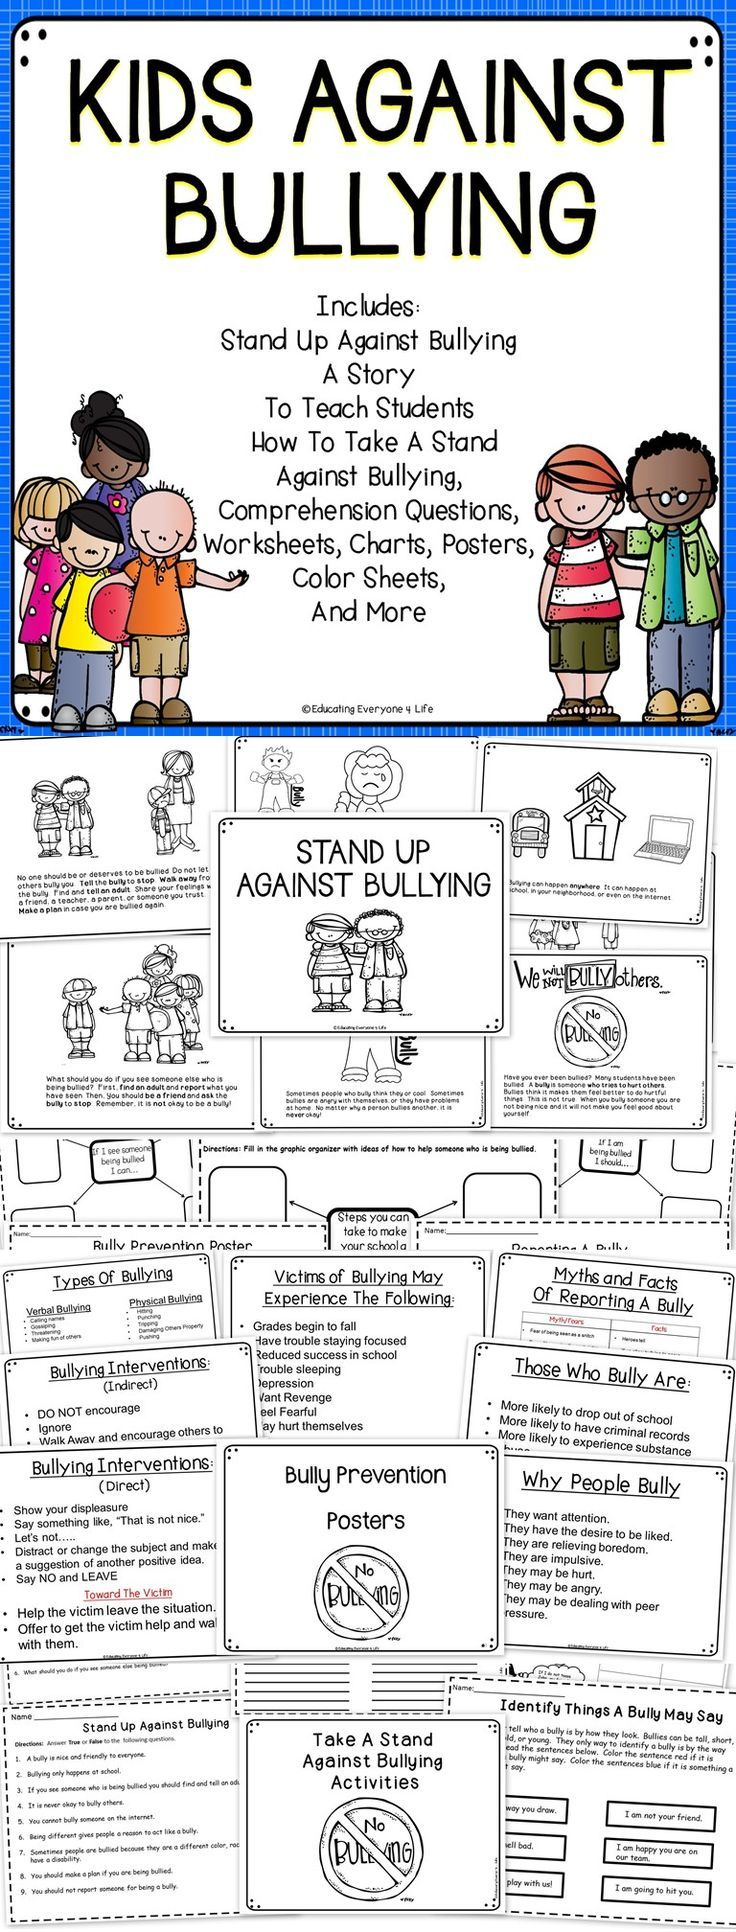 Worksheet Printable Bully Story For Kids best 25 bullying prevention ideas on pinterest kids against this bully activity pack includes everything you need to teach students